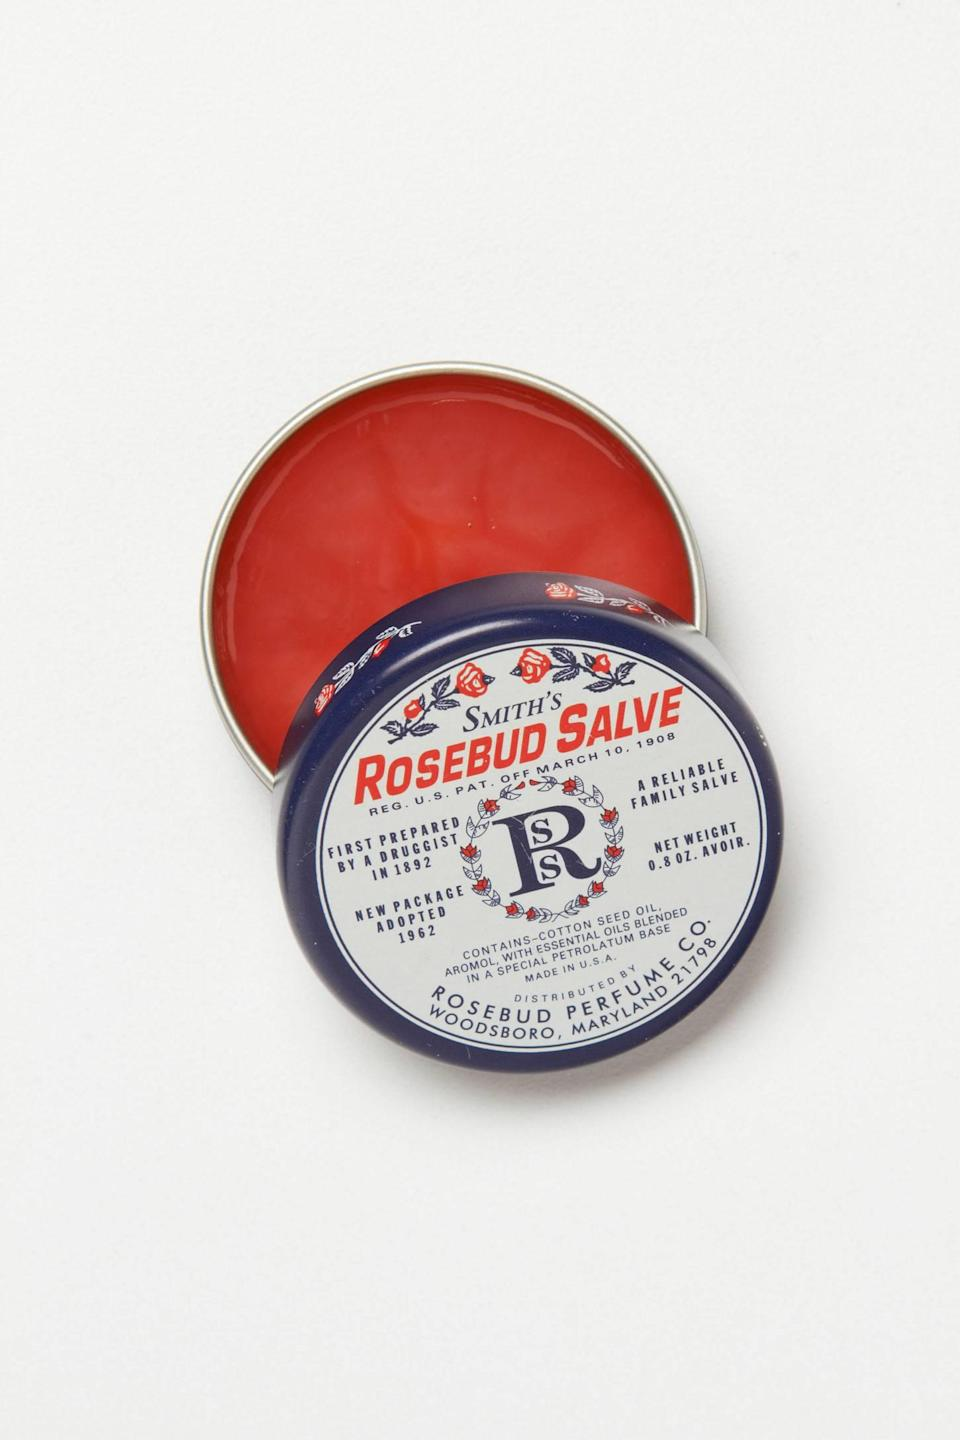 """<h3>Smith's Rosebud Salve</h3><br>This formula <a href=""""https://www.refinery29.com/en-us/smiths-rosebud-salve-history"""" rel=""""nofollow noopener"""" target=""""_blank"""" data-ylk=""""slk:has been around since 1895"""" class=""""link rapid-noclick-resp"""">has been around since 1895</a>, and for good reason: It's the ultimate multitasker that can be used to tame frizz or baby hairs, add a hint of color to cheekbones, soothe dry cuticles, and yes, repair chapped lips.<br><br><strong>Smith's</strong> Rosebud Salve, $, available at <a href=""""https://go.skimresources.com/?id=30283X879131&url=https%3A%2F%2Fwww.anthropologie.com%2Fshop%2Fsmiths-rosebud-salve"""" rel=""""nofollow noopener"""" target=""""_blank"""" data-ylk=""""slk:Anthropologie"""" class=""""link rapid-noclick-resp"""">Anthropologie</a>"""